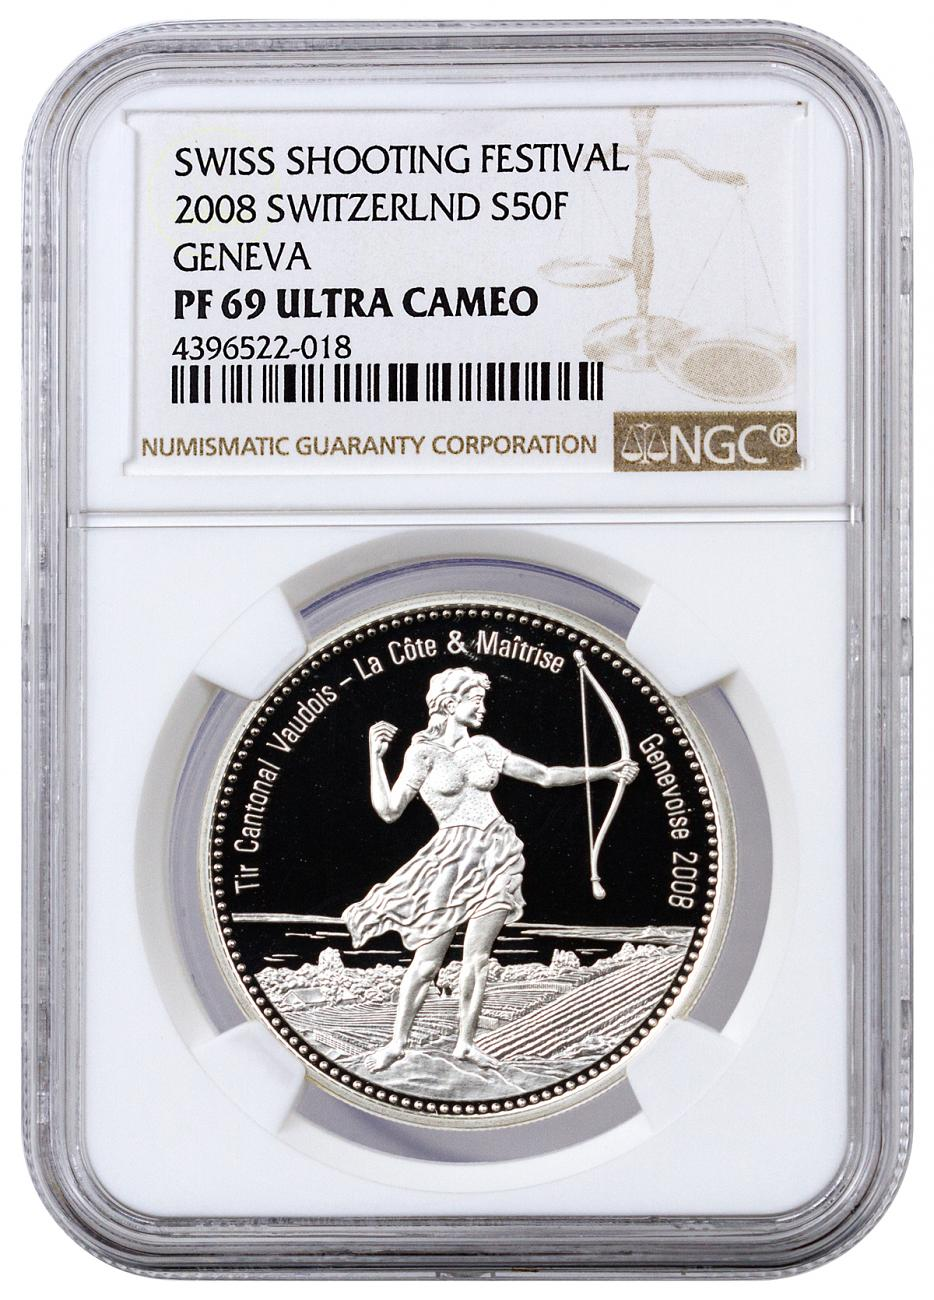 2008 Switzerland 50 Francs Proof Silver Shooting Festival Thaler - Geneva - NGC PF69 UC